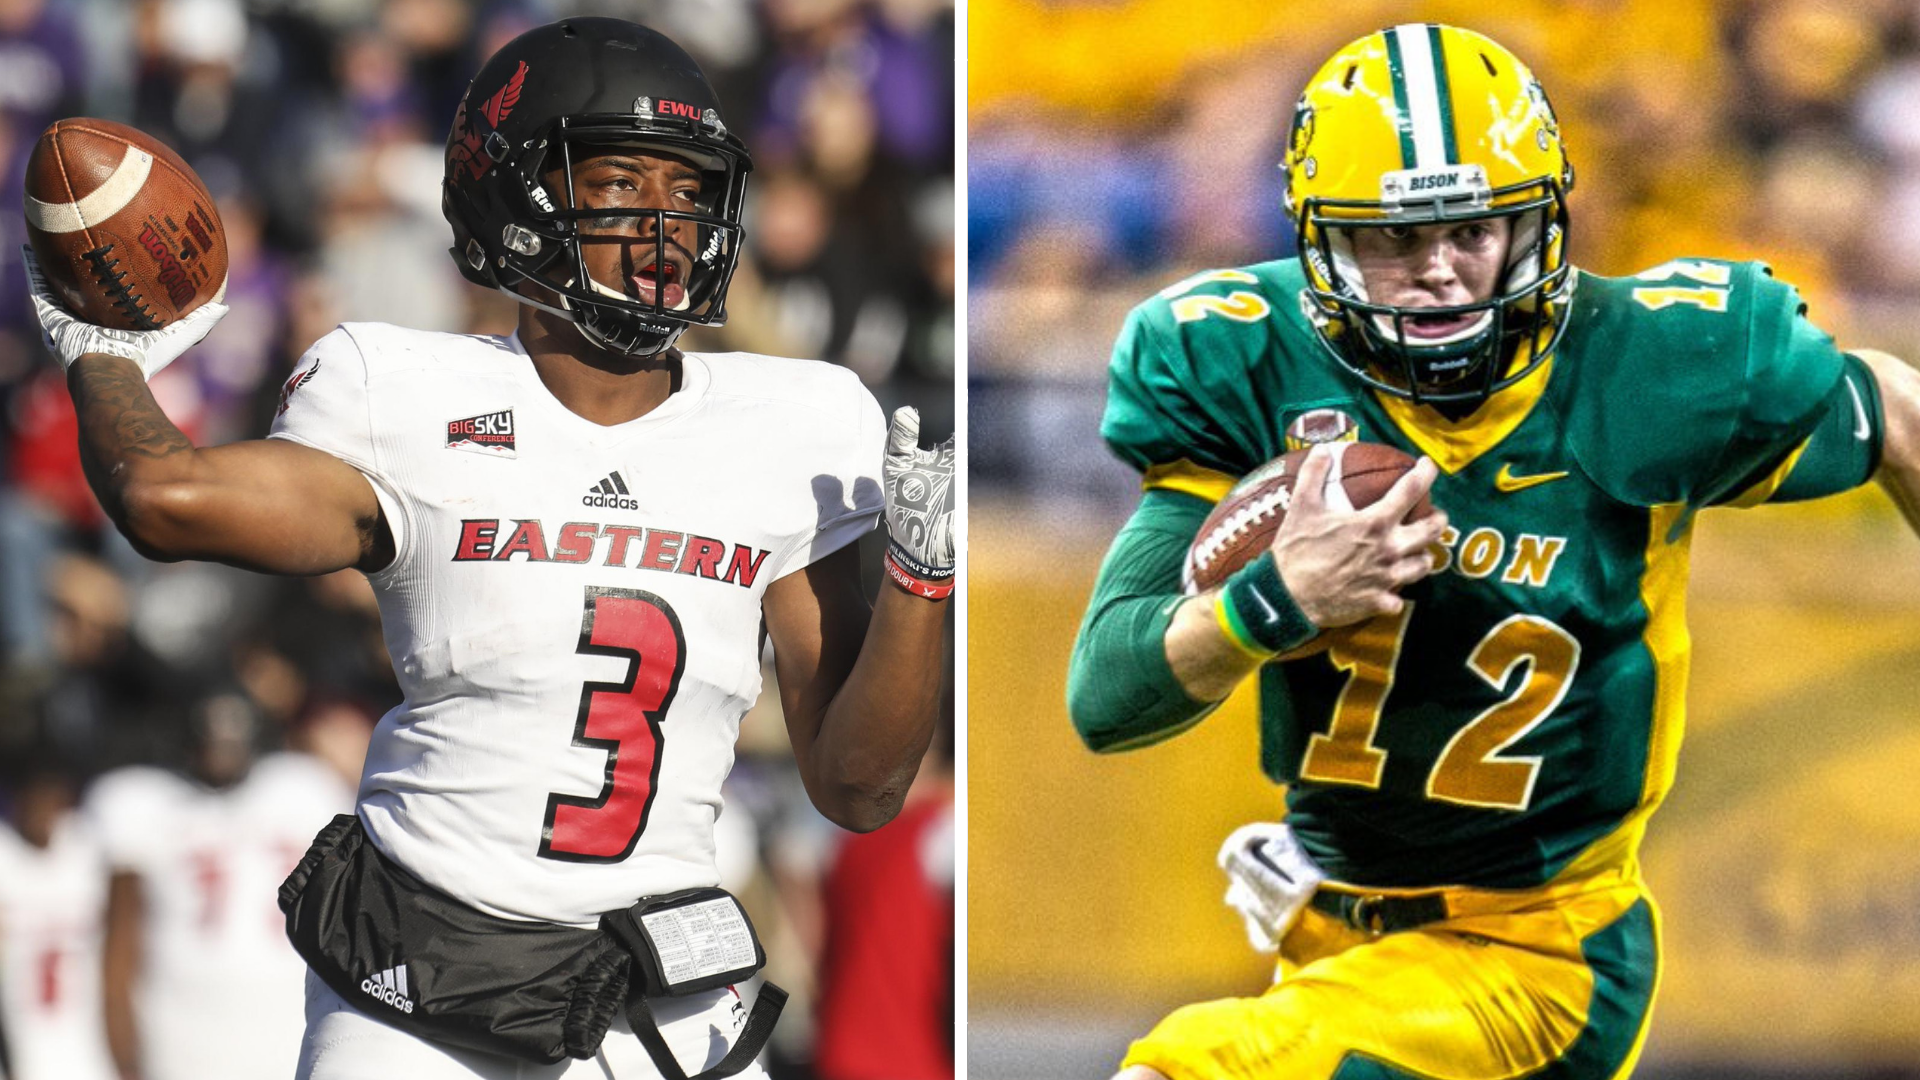 Bison Will Stick It To Eagles For Big Cover In FCS Title Game